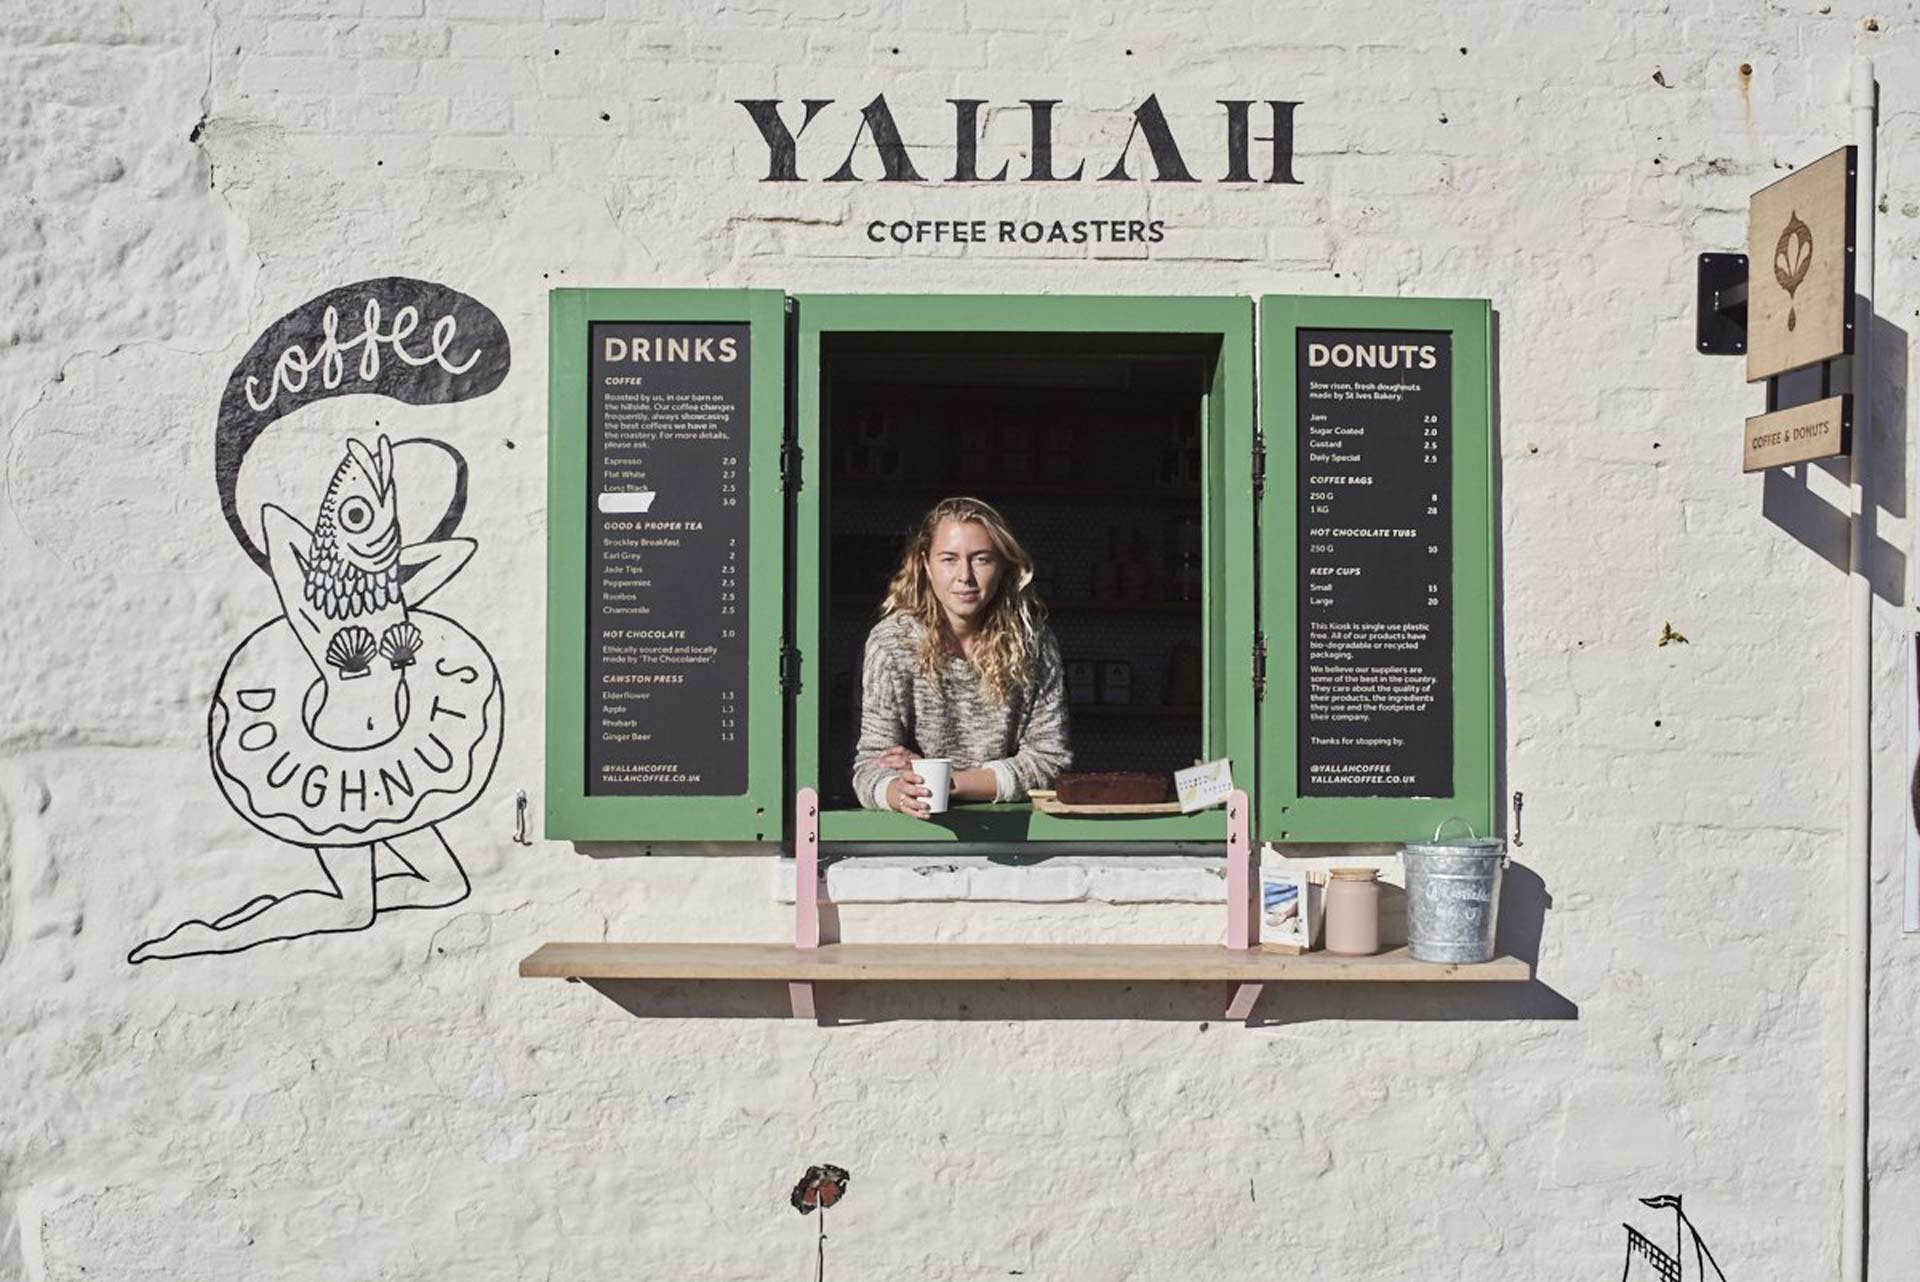 yallah coffee roasters